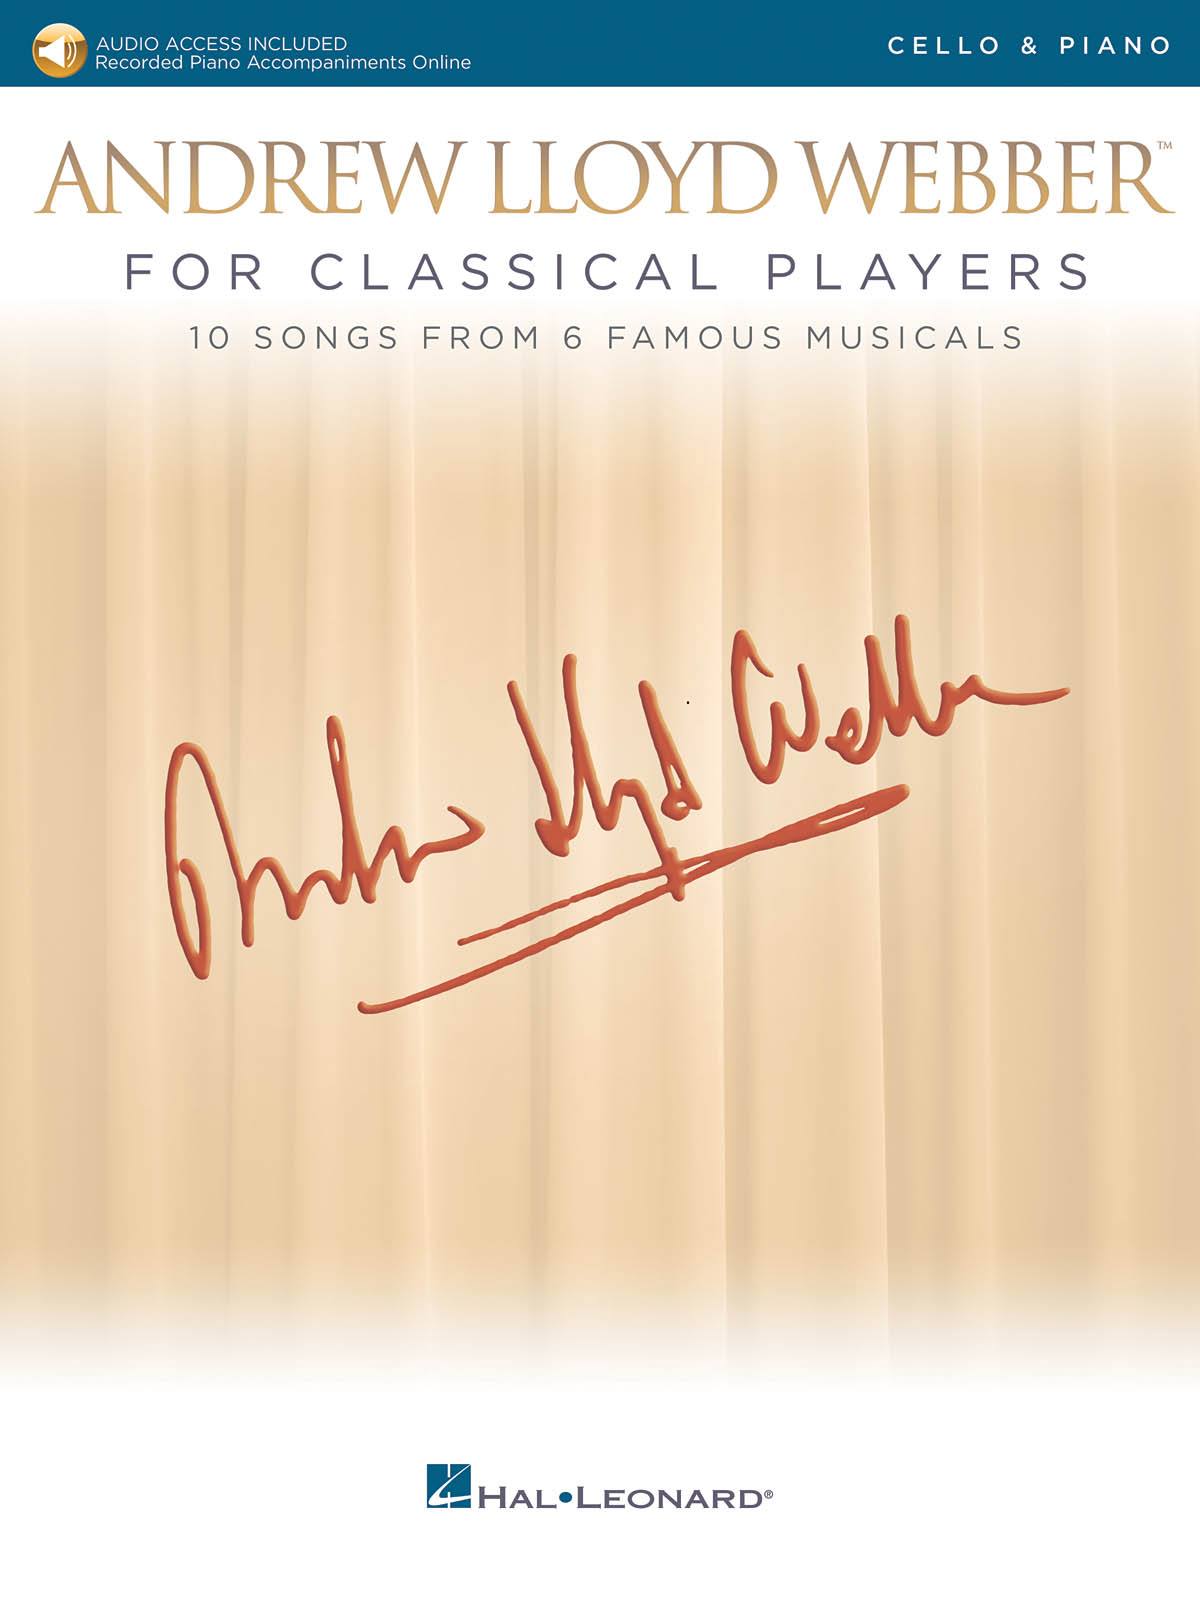 Andrew Lloyd Webber: Andrew Lloyd Webber for Classical Players: Cello and